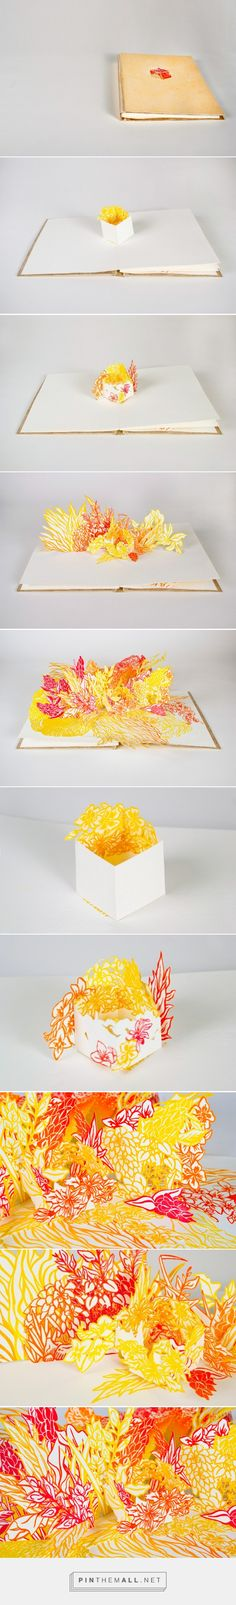 Cube Pop-Up Book on Behance